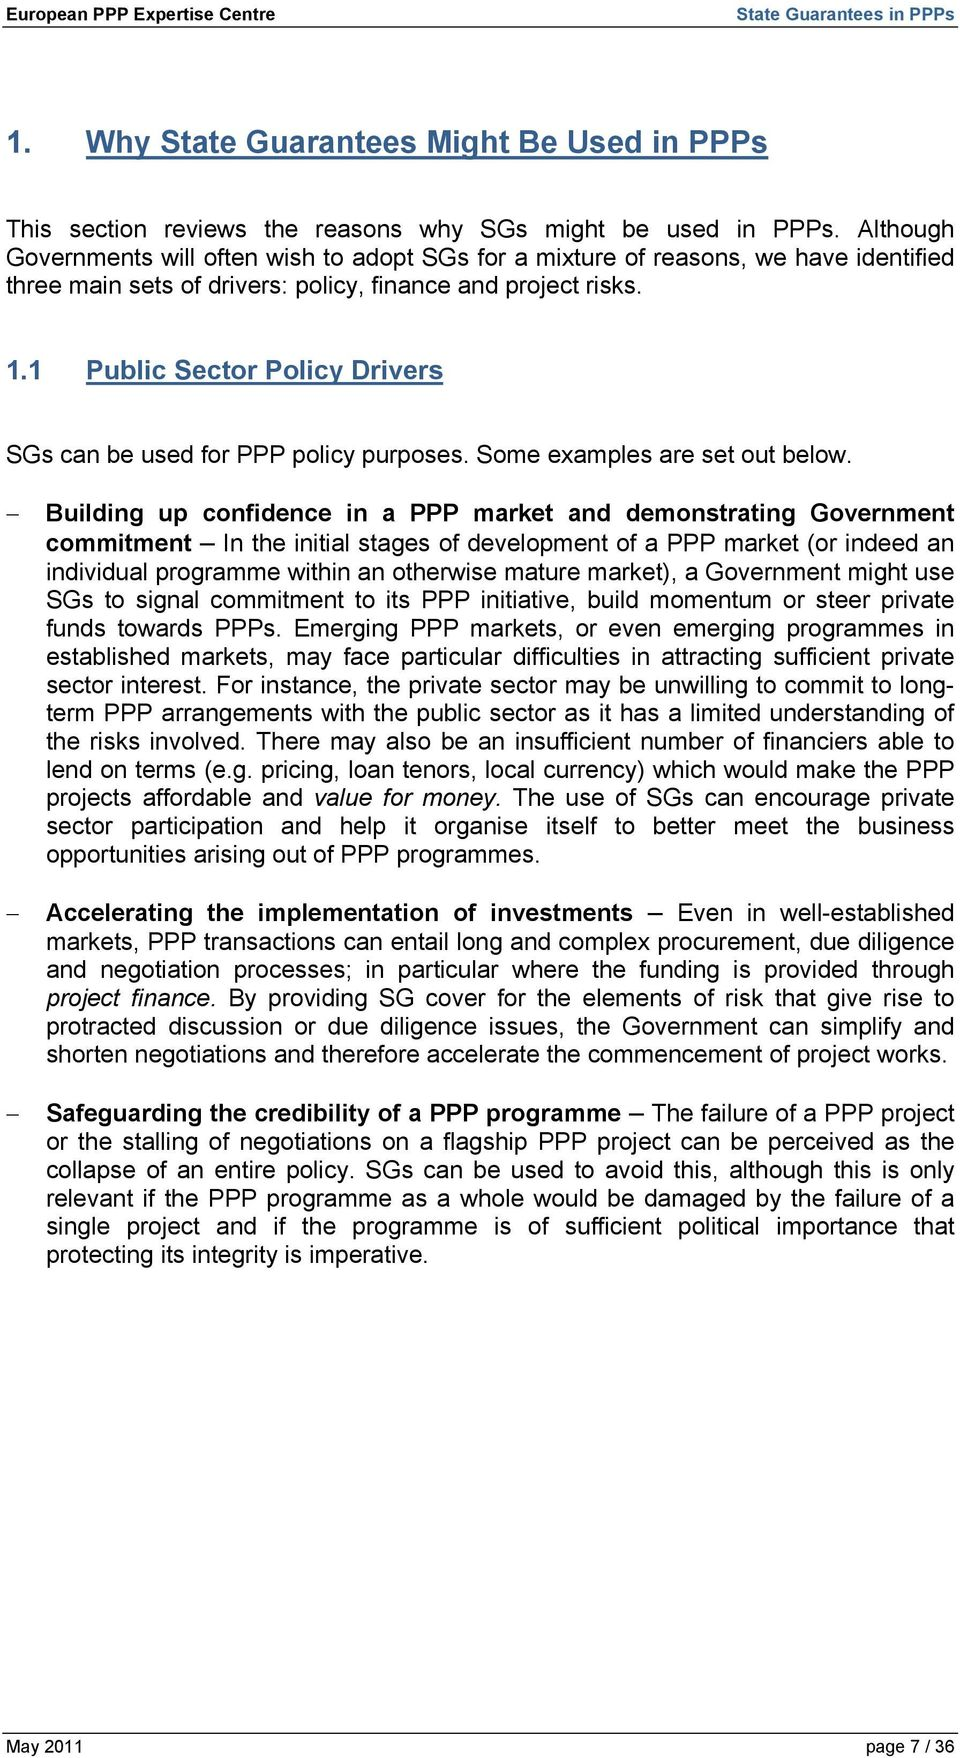 1 Public Sector Policy Drivers SGs can be used for PPP policy purposes. Some examples are set out below.